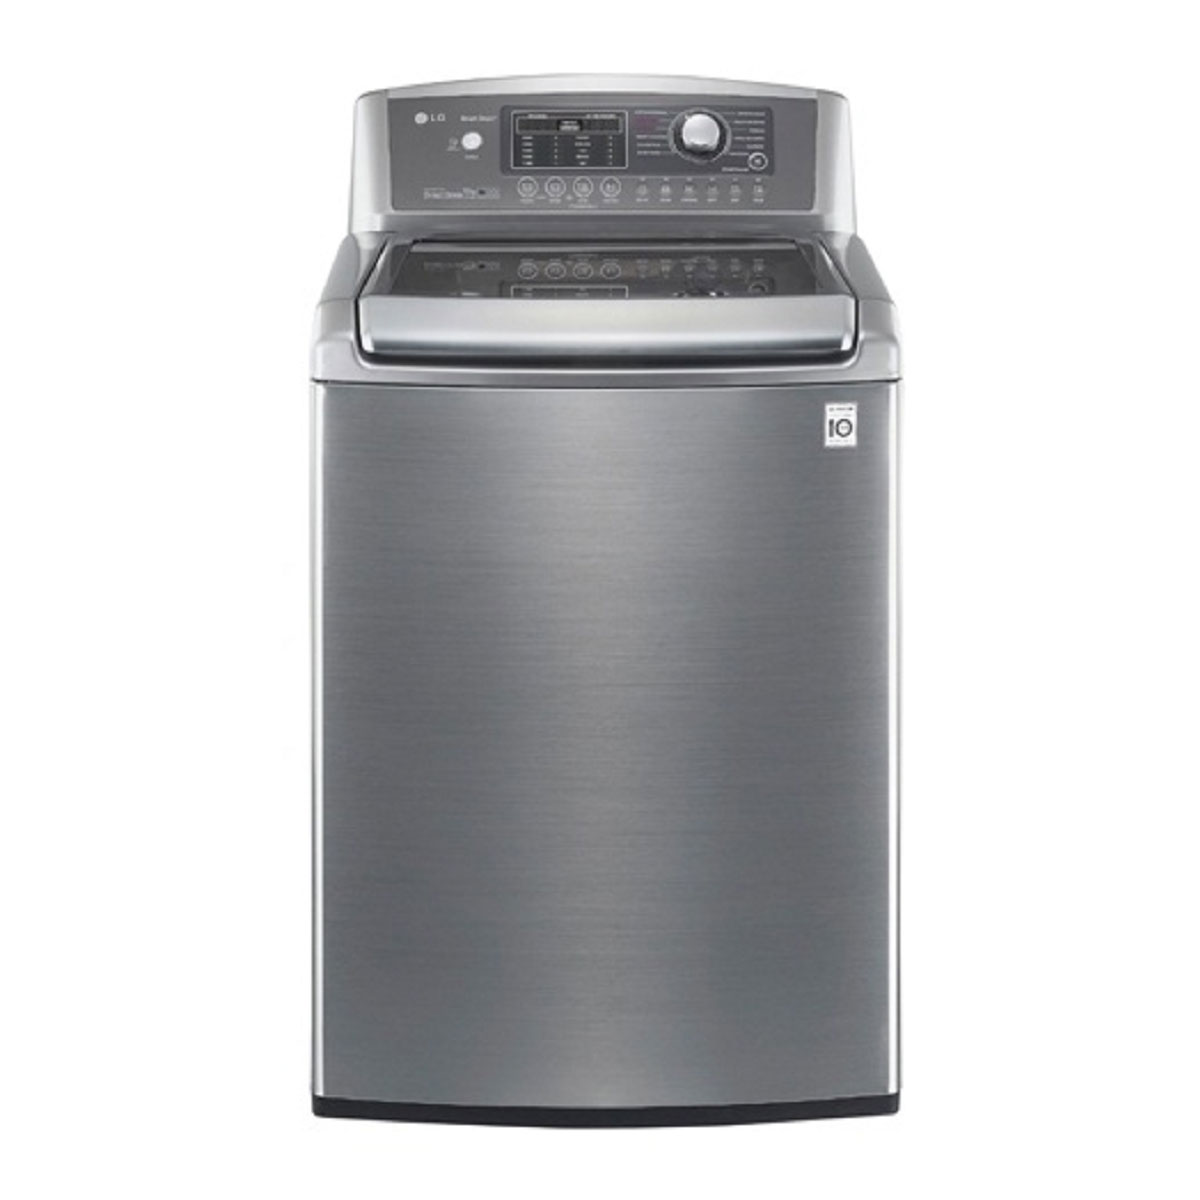 LG WTR10686 10kg Top Load Washing Machine